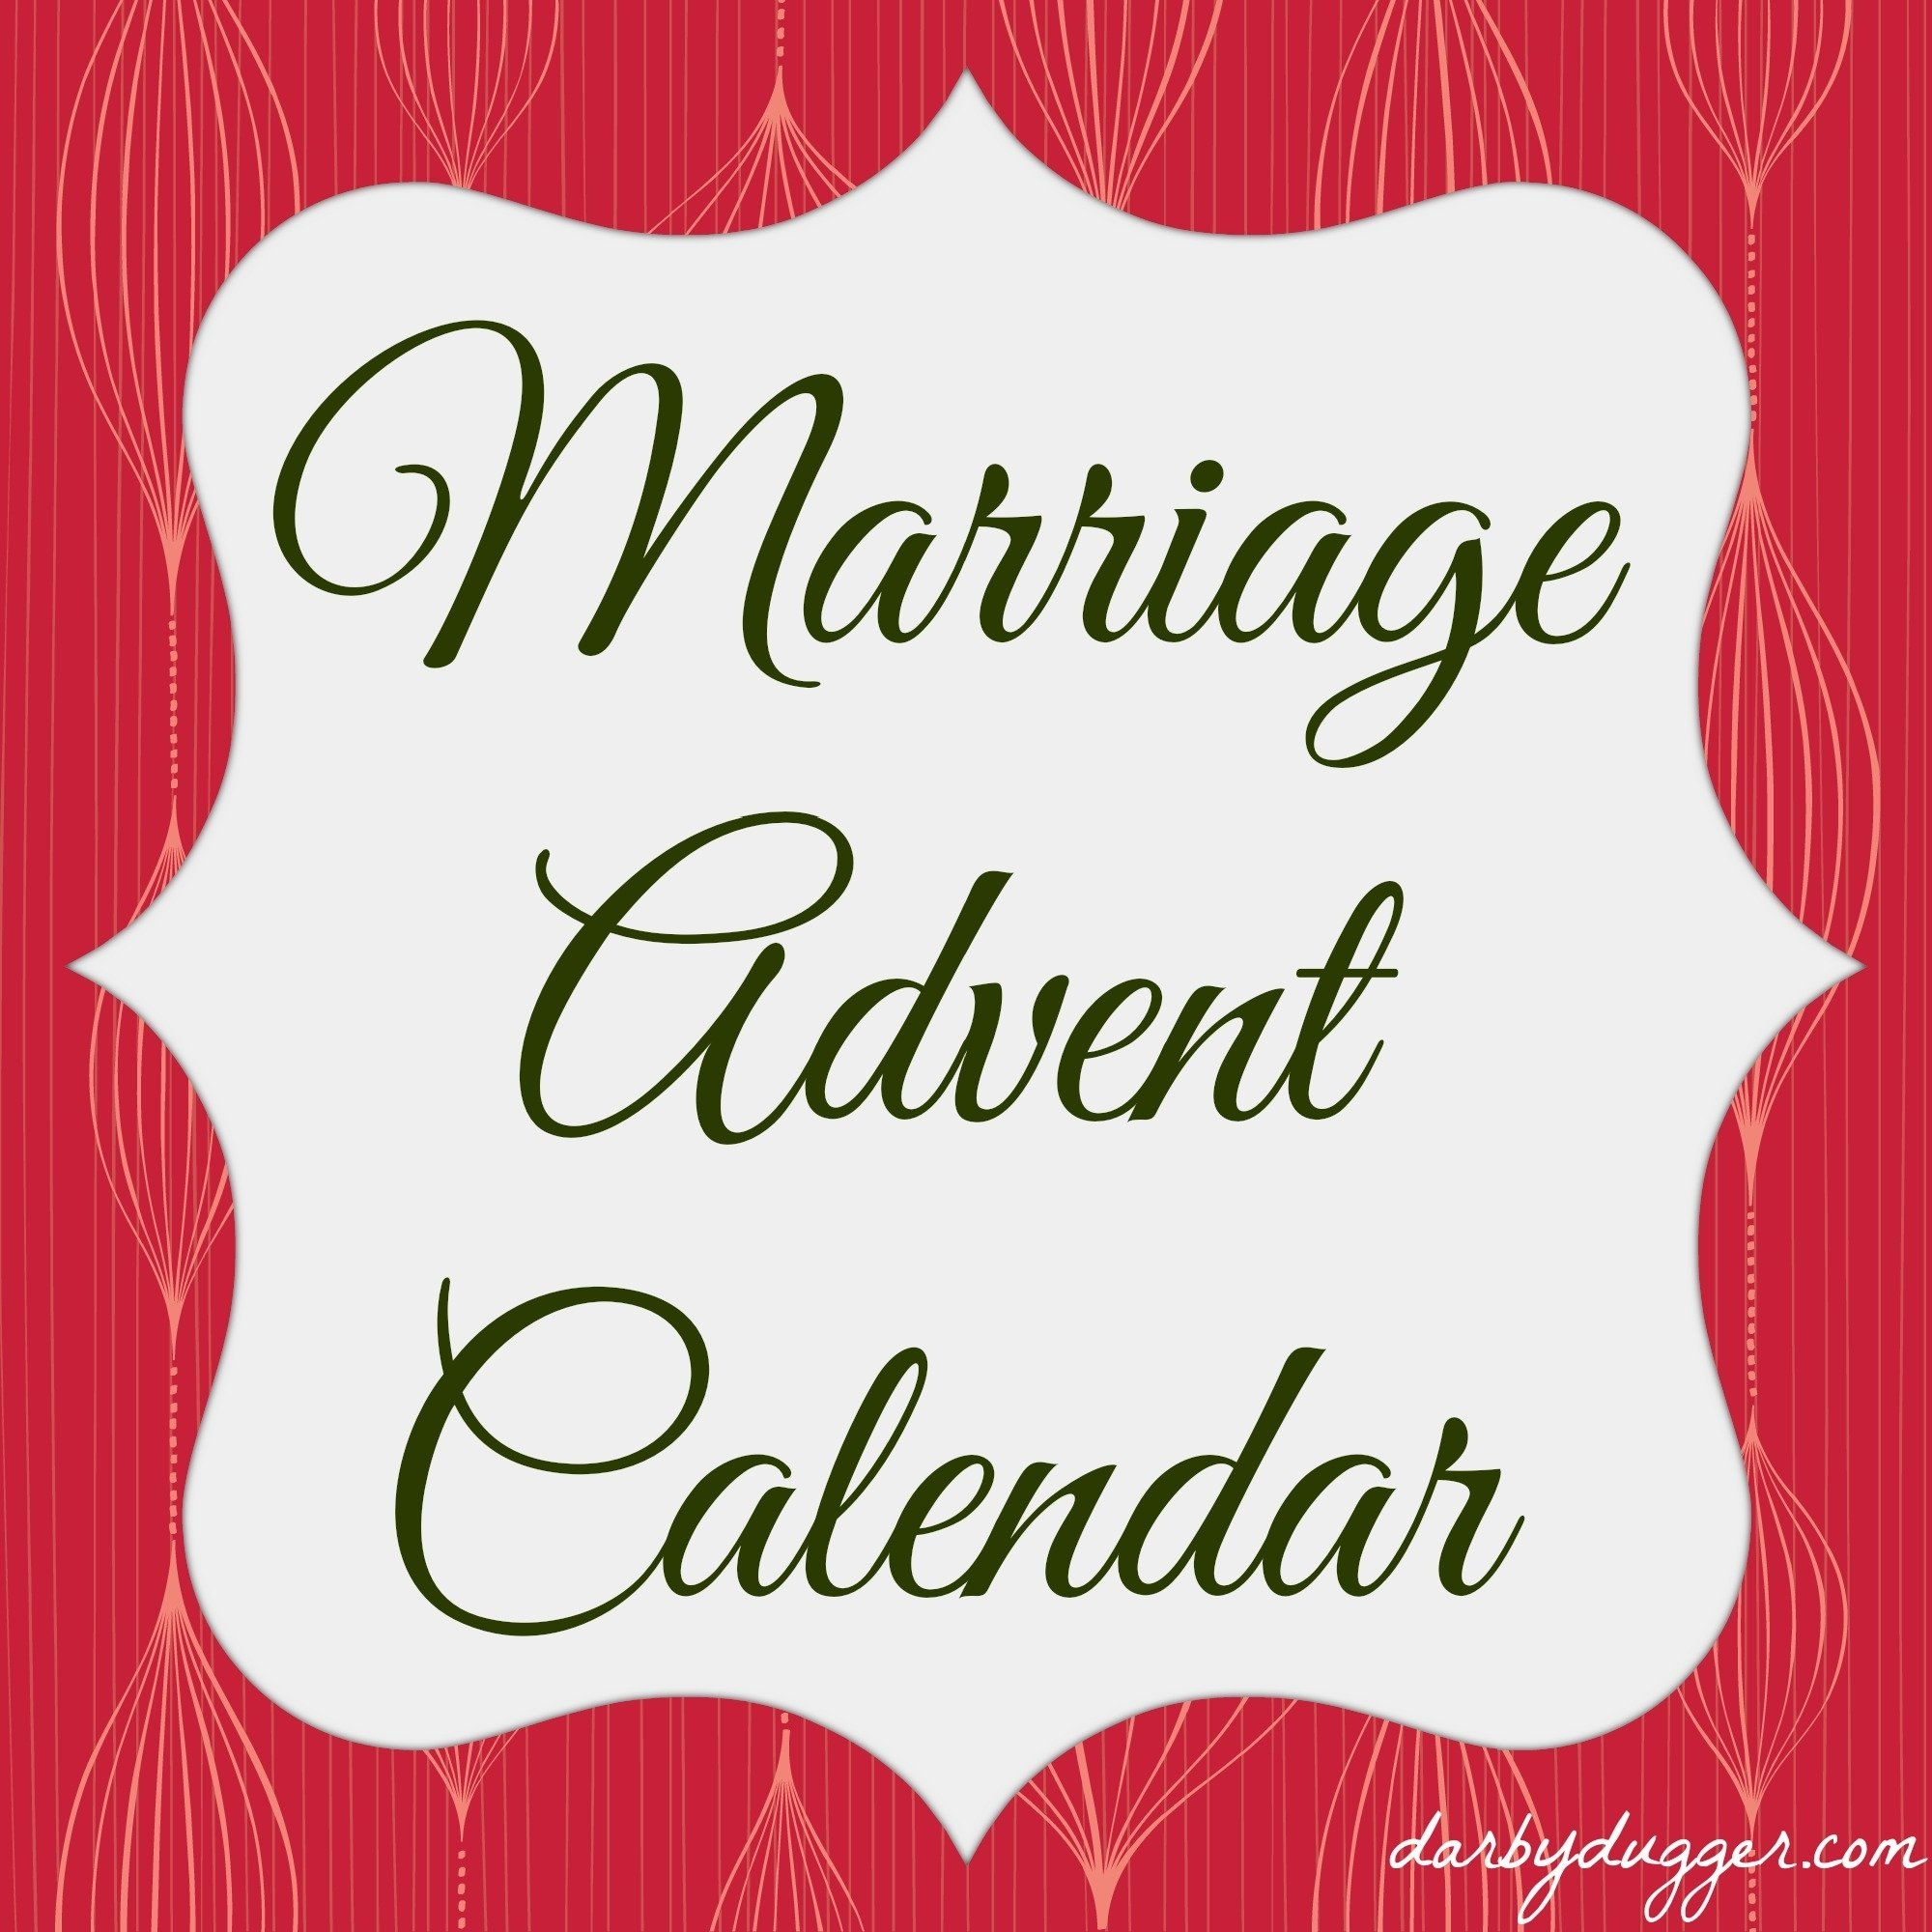 10 Trendy Ideas For Advent Calendar Gifts marriage advent calendardarby dugger